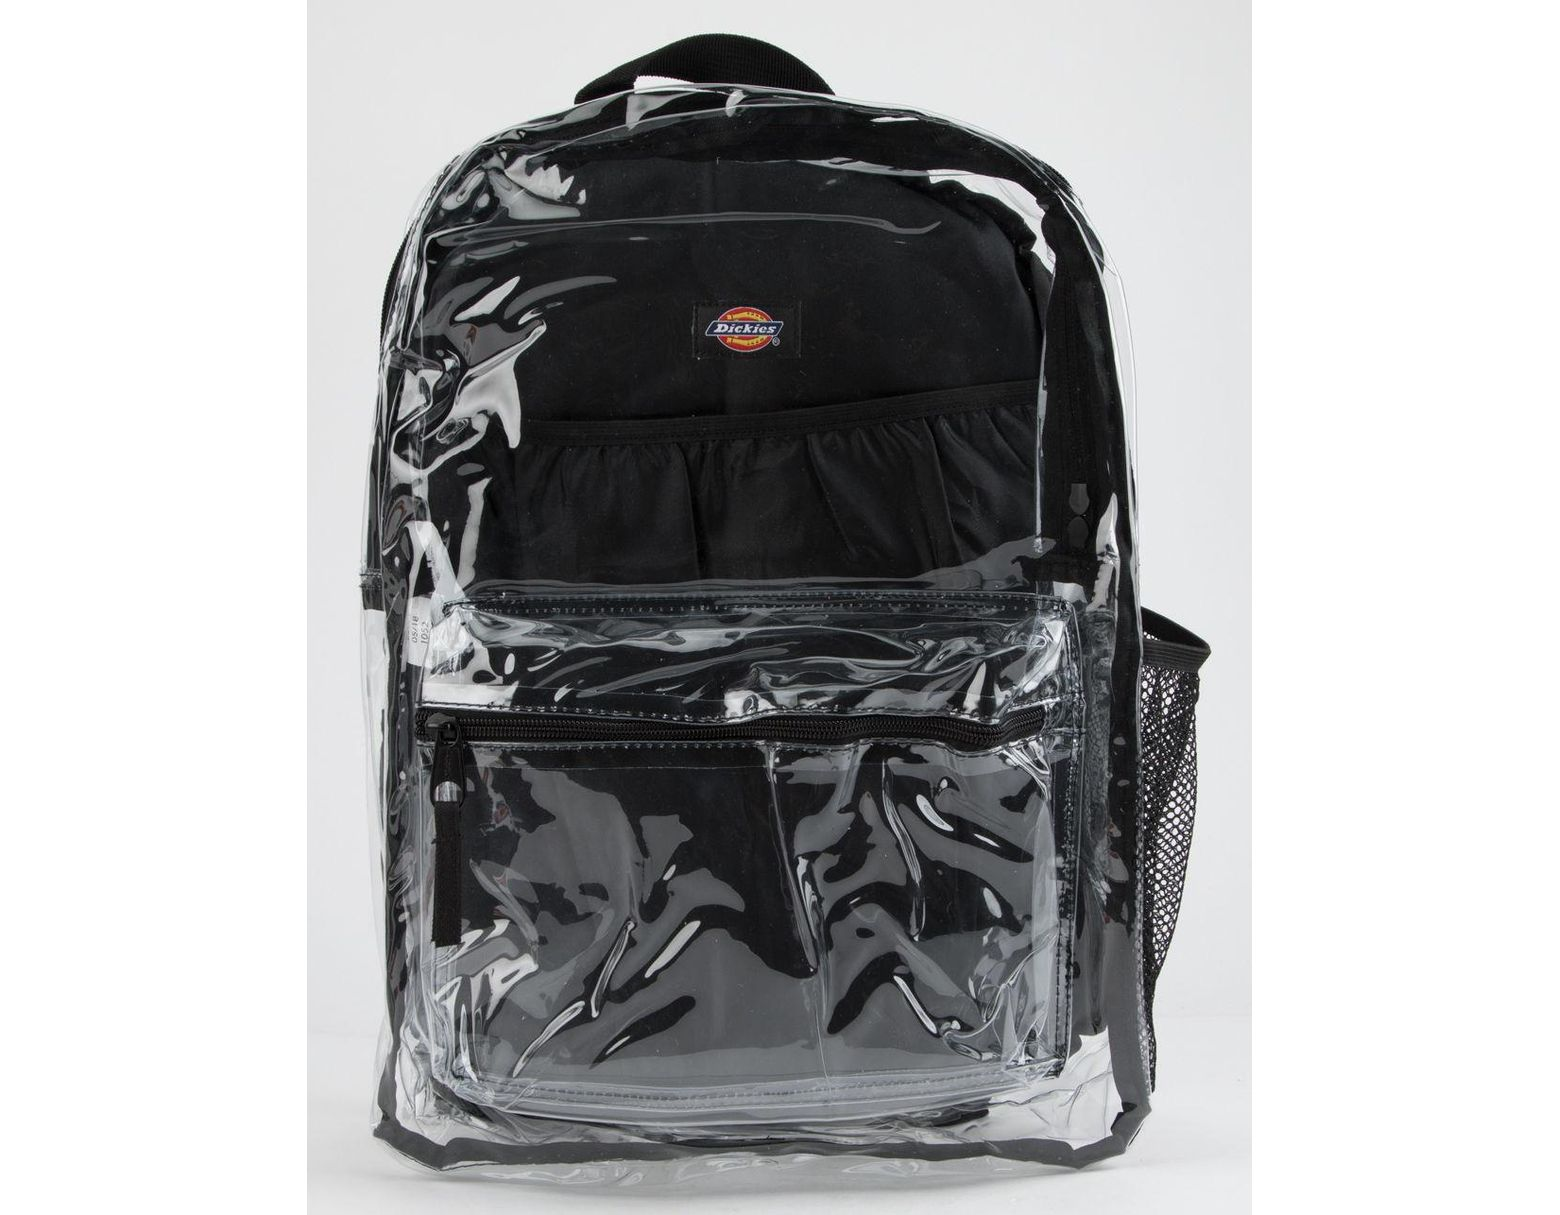 5d3b3b478e1 Men's Clear Pvc Black Backpack